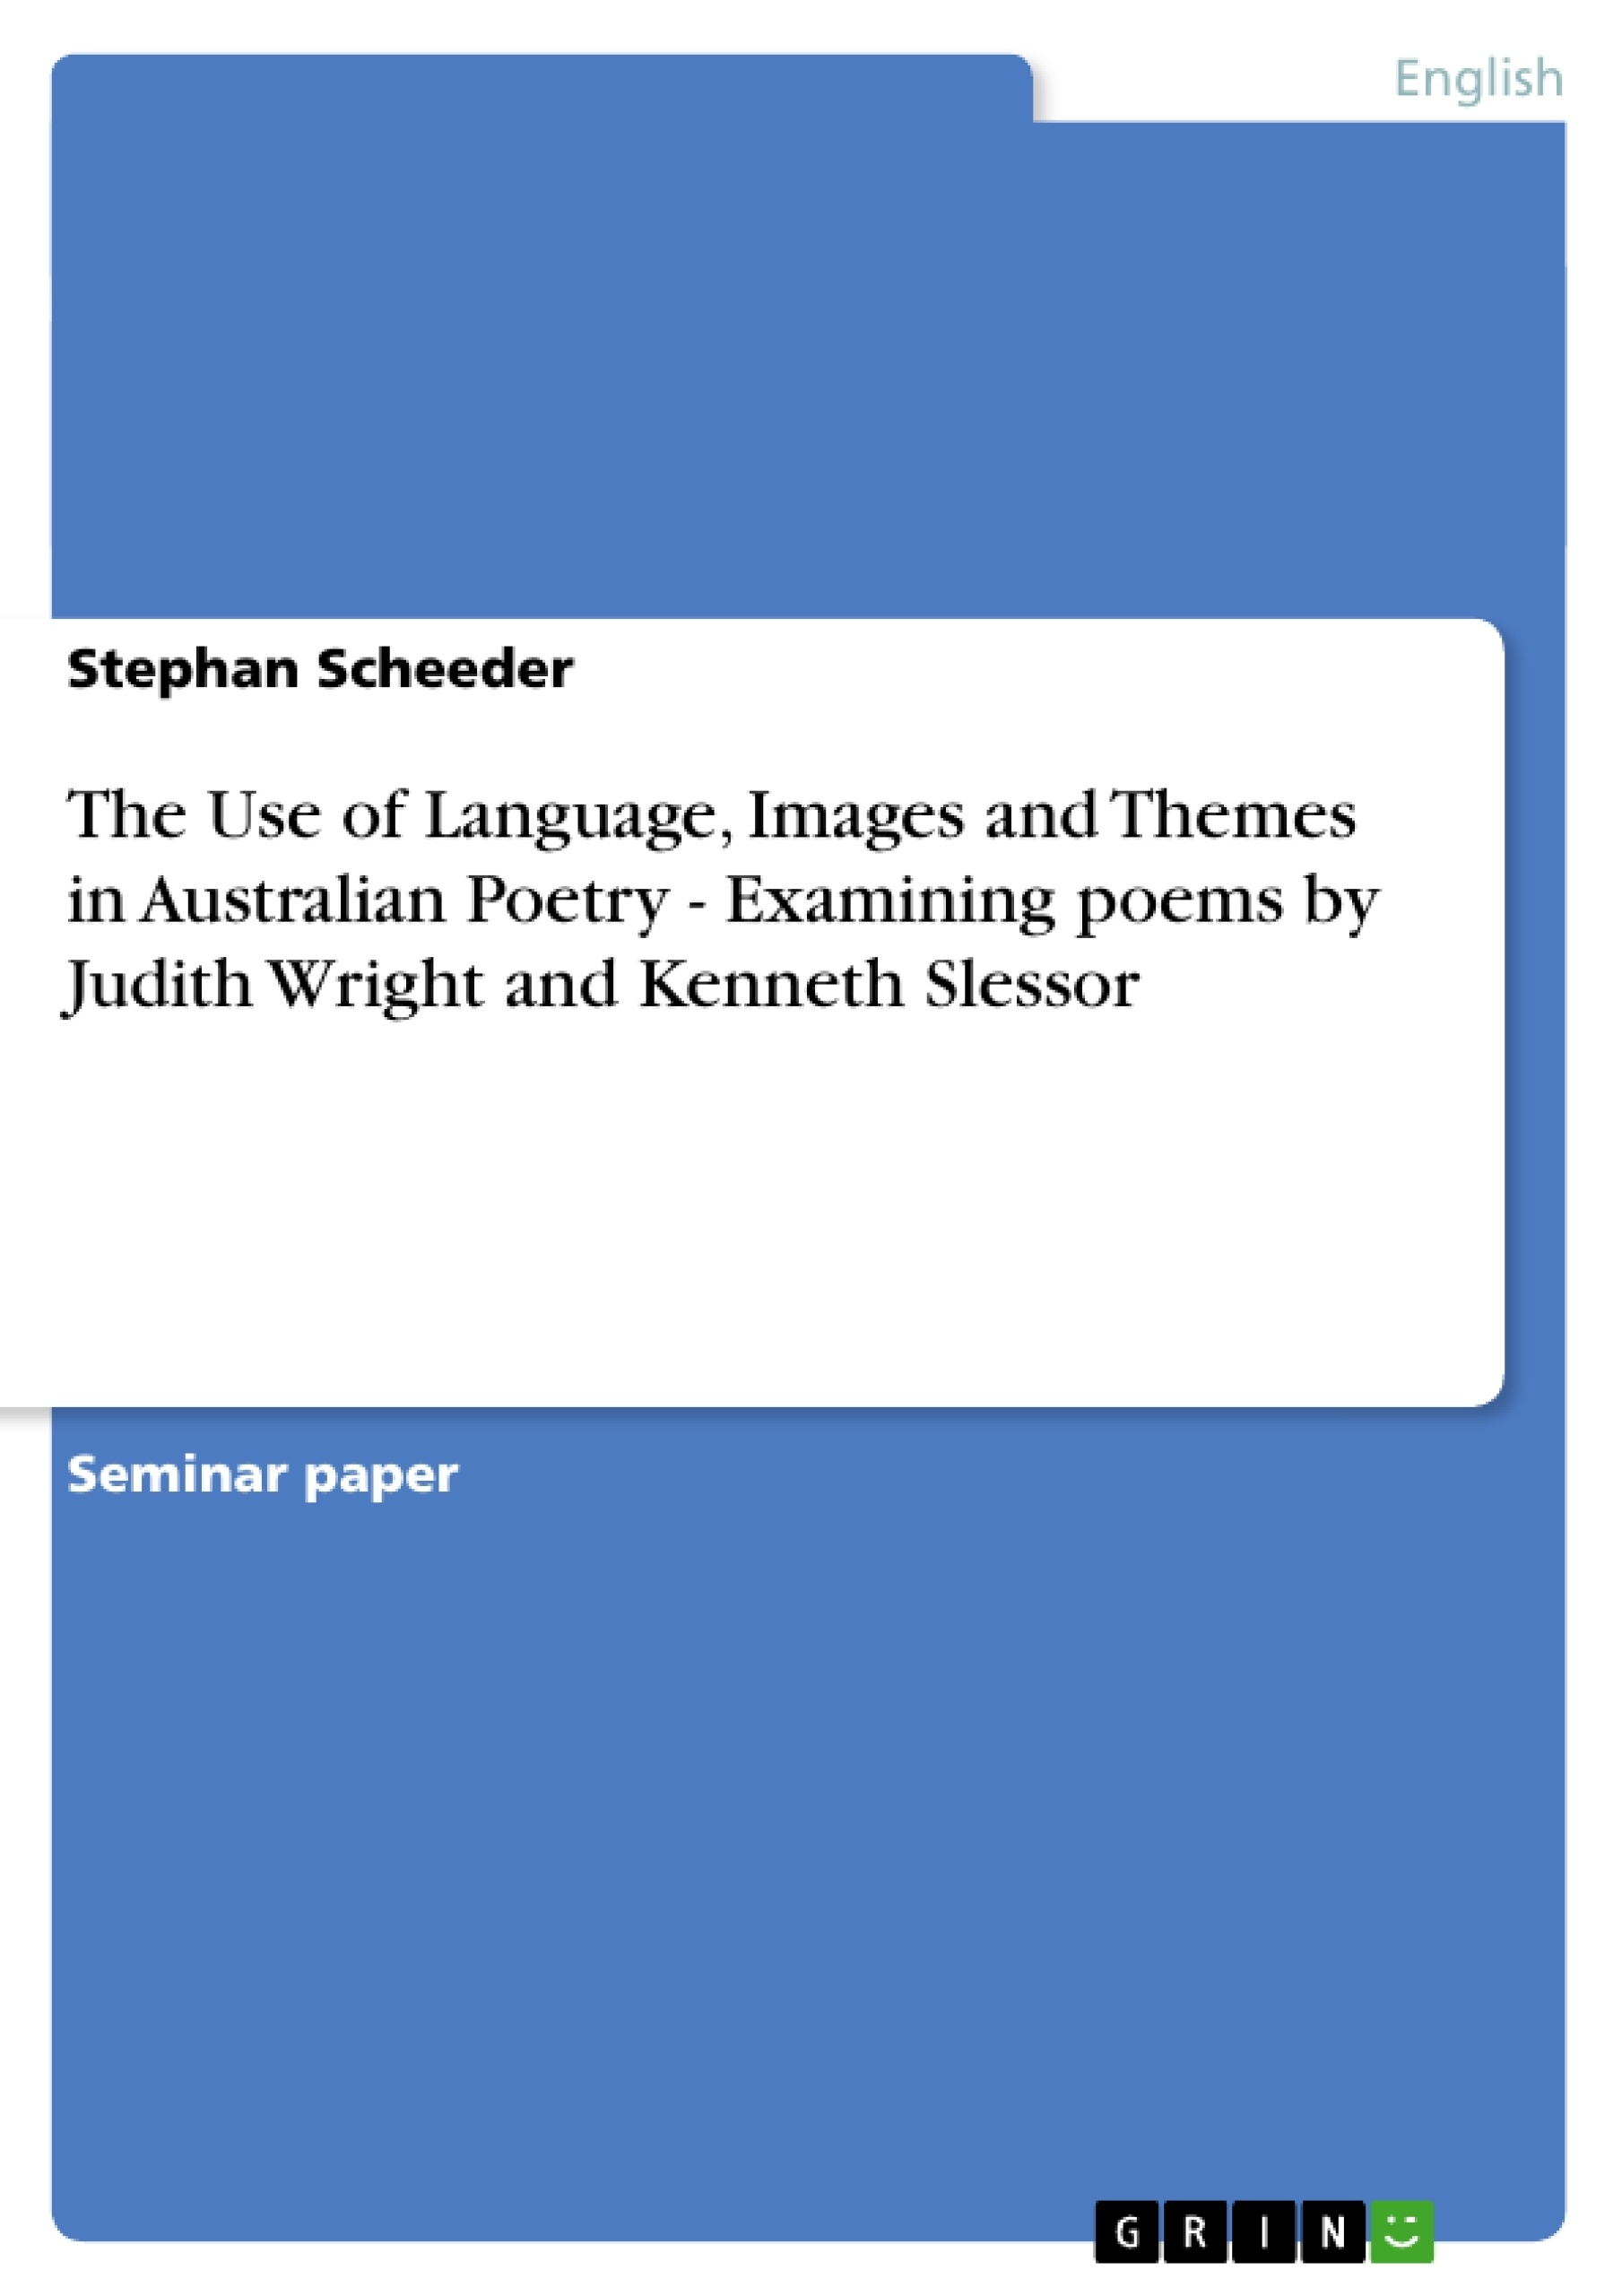 Title: The Use of Language, Images and Themes in Australian Poetry - Examining poems by Judith Wright and Kenneth Slessor